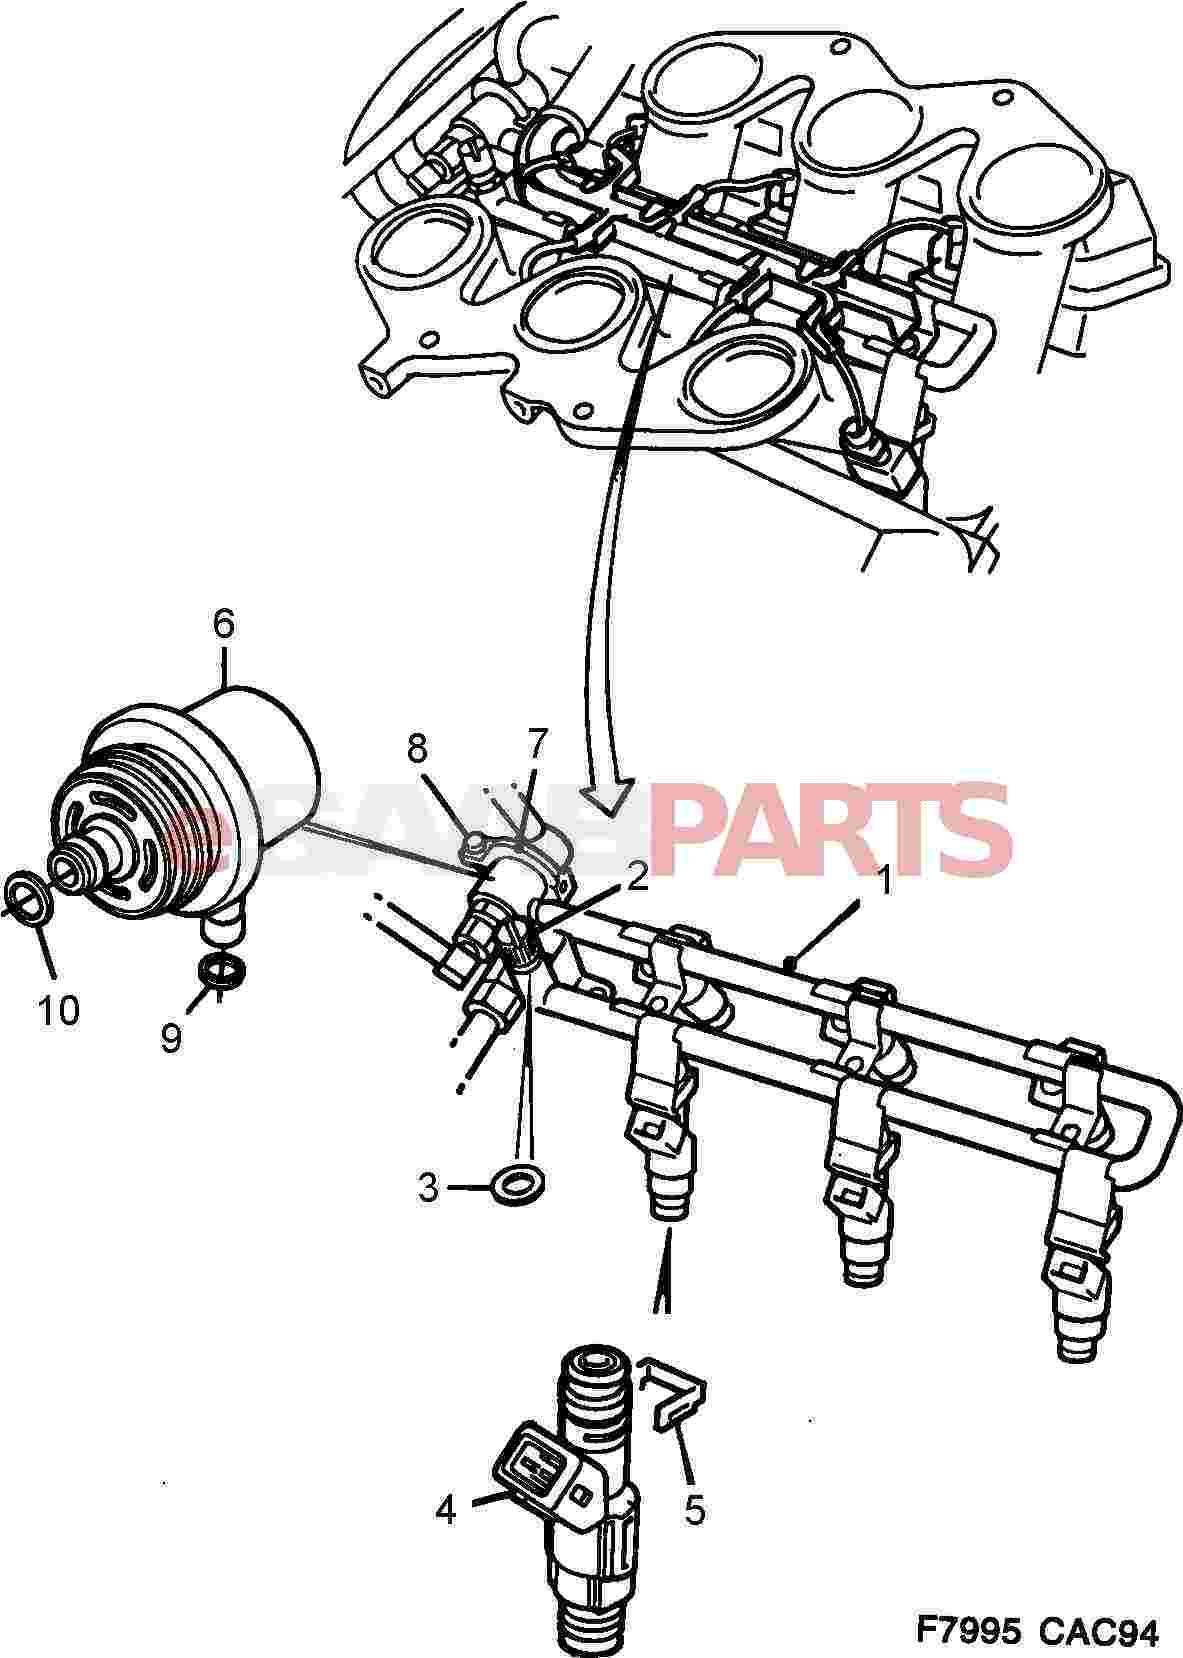 hight resolution of saab 9000 fuel system diagram wiring diagram weeksaab 9000 fuel system diagram wiring diagram today saab